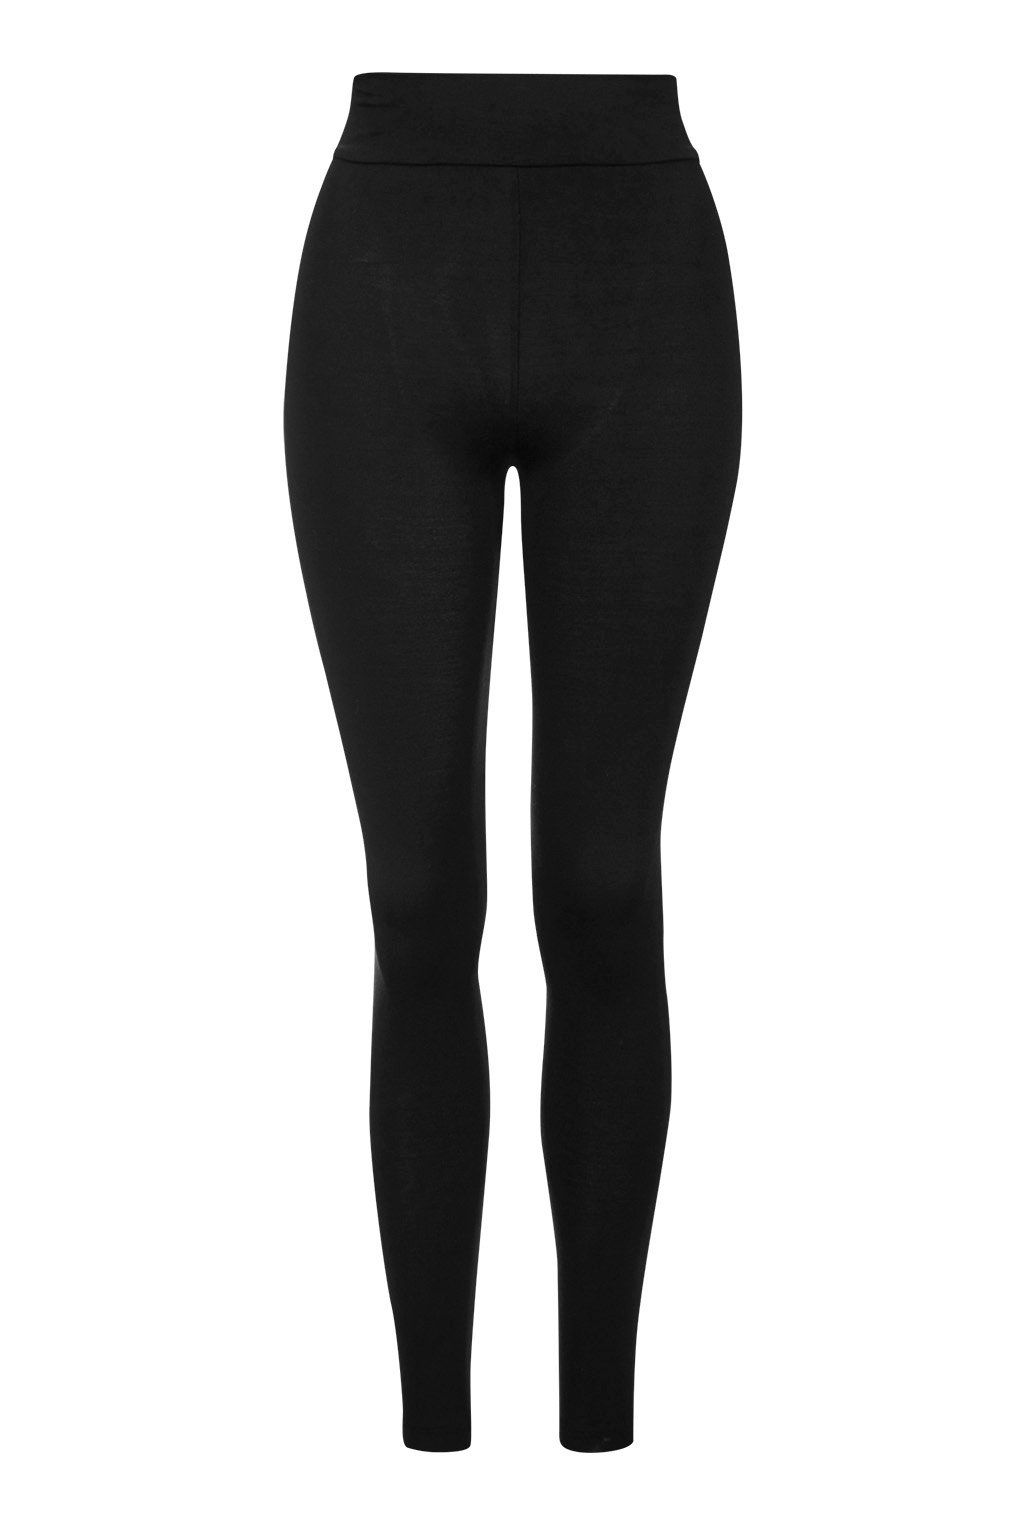 Topshop High-waisted Leggings